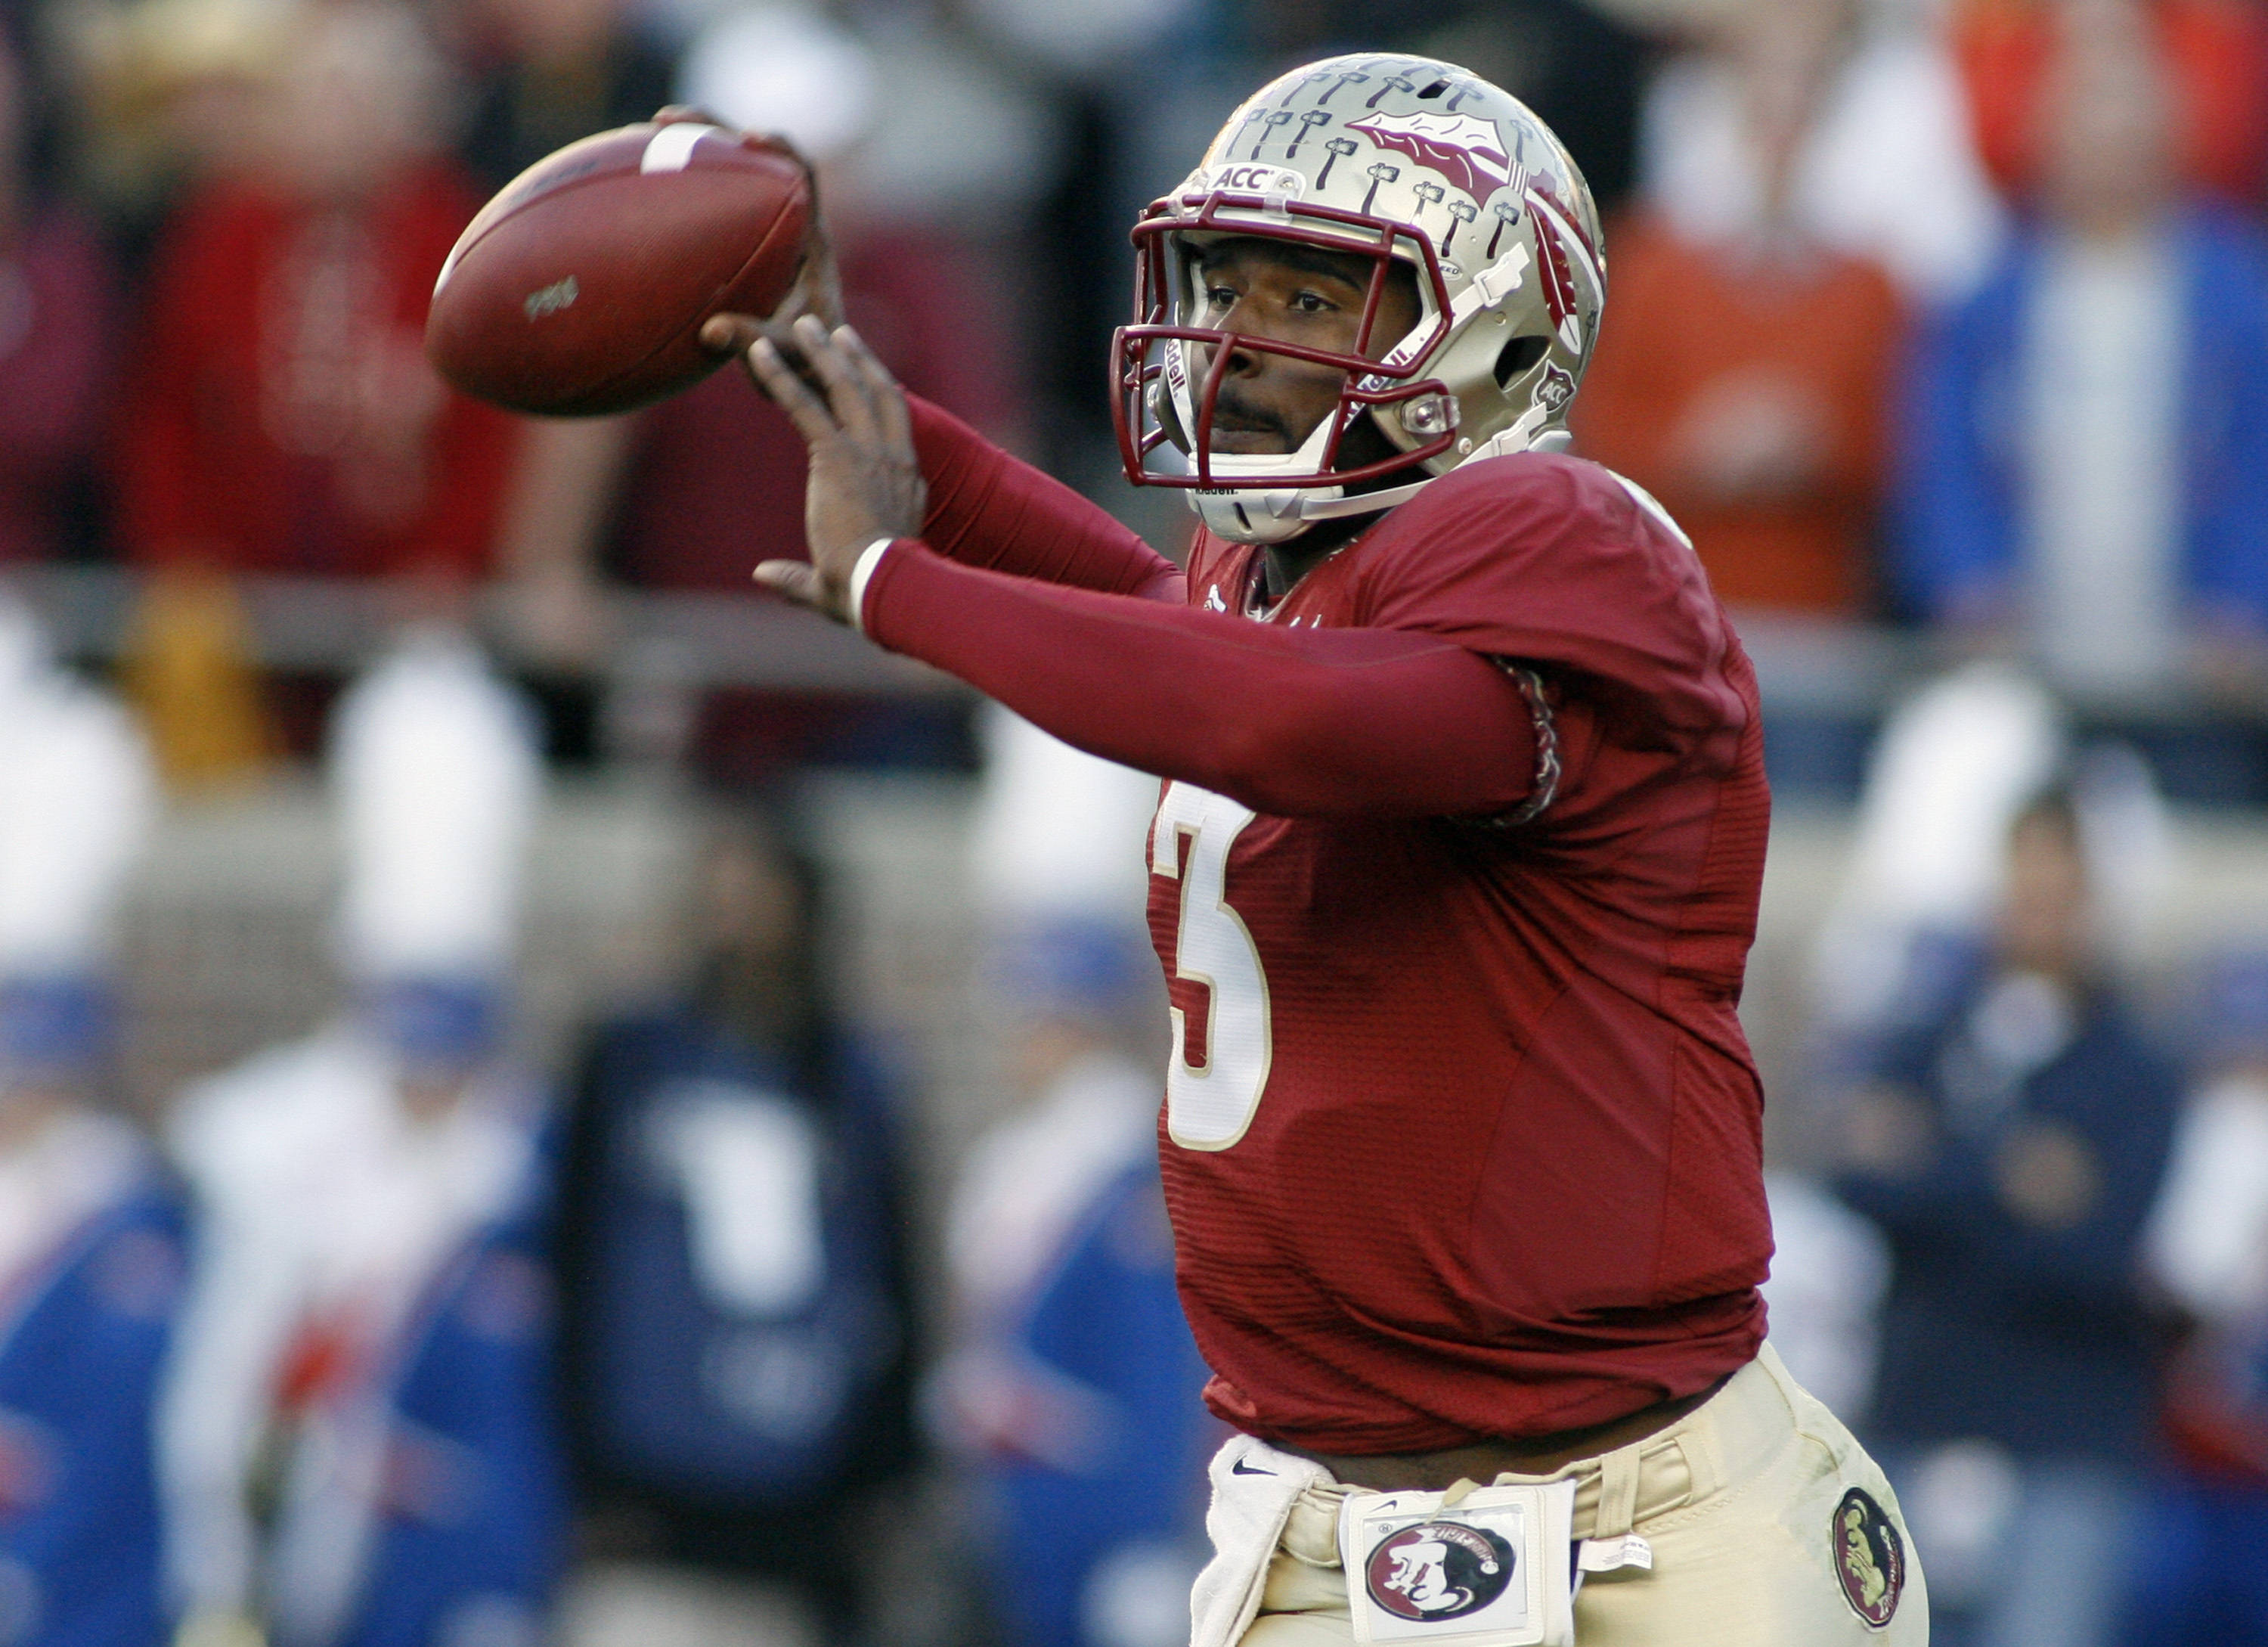 Florida State quarterback EJ Manuel throws a pass. (AP Photo/Phil Sears)